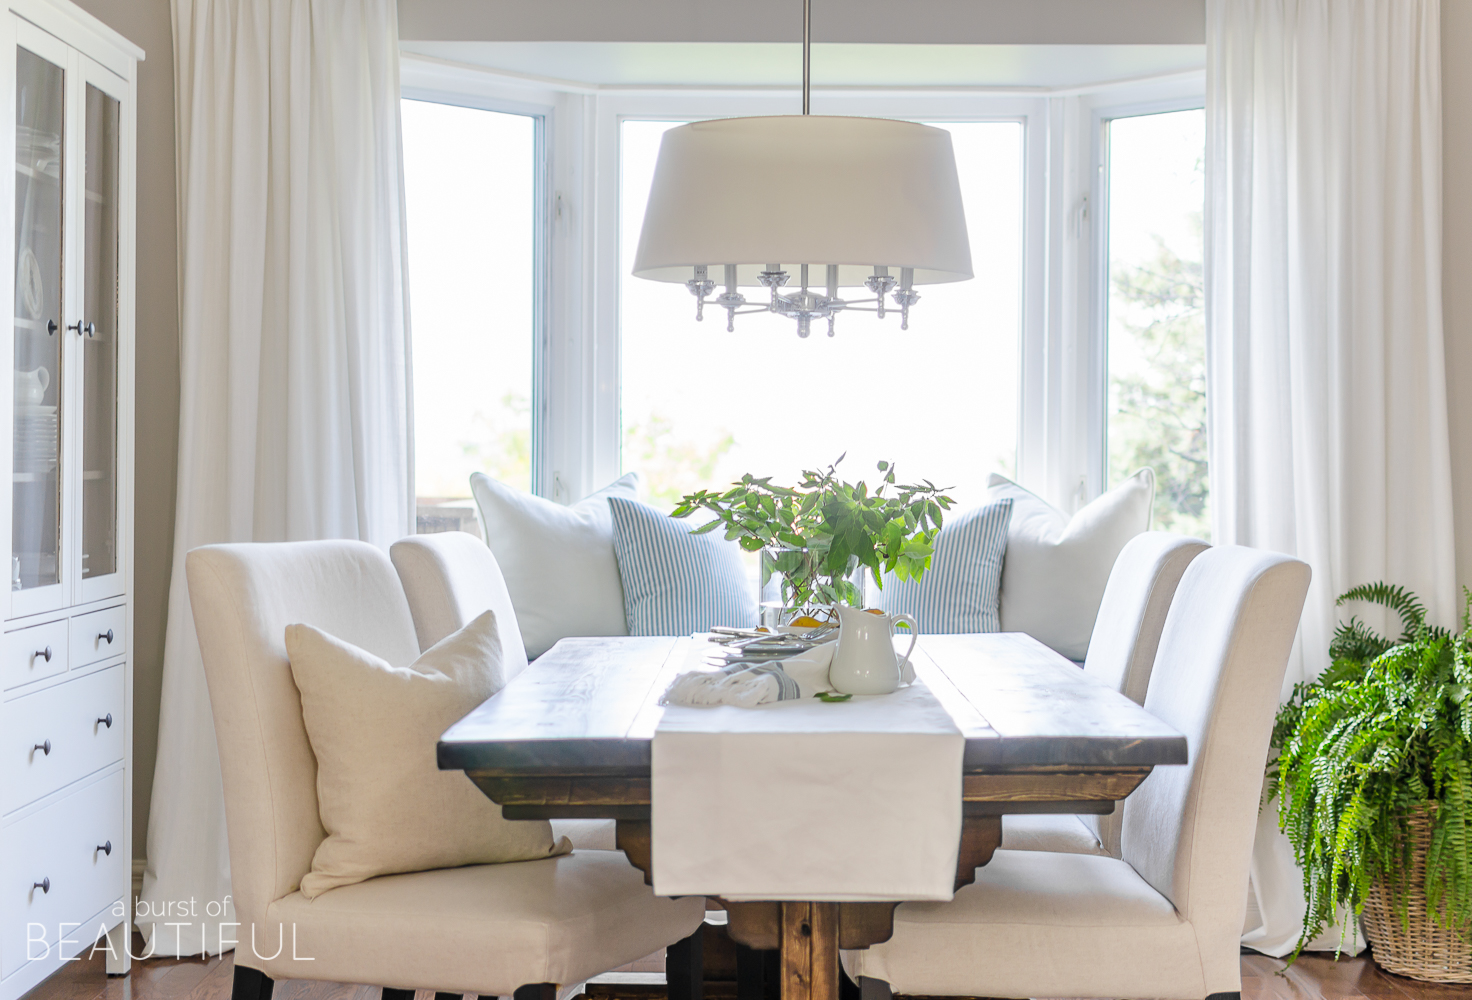 A DIY Farmhouse Dining Table And Window Bench Take Center Stage In This Modern